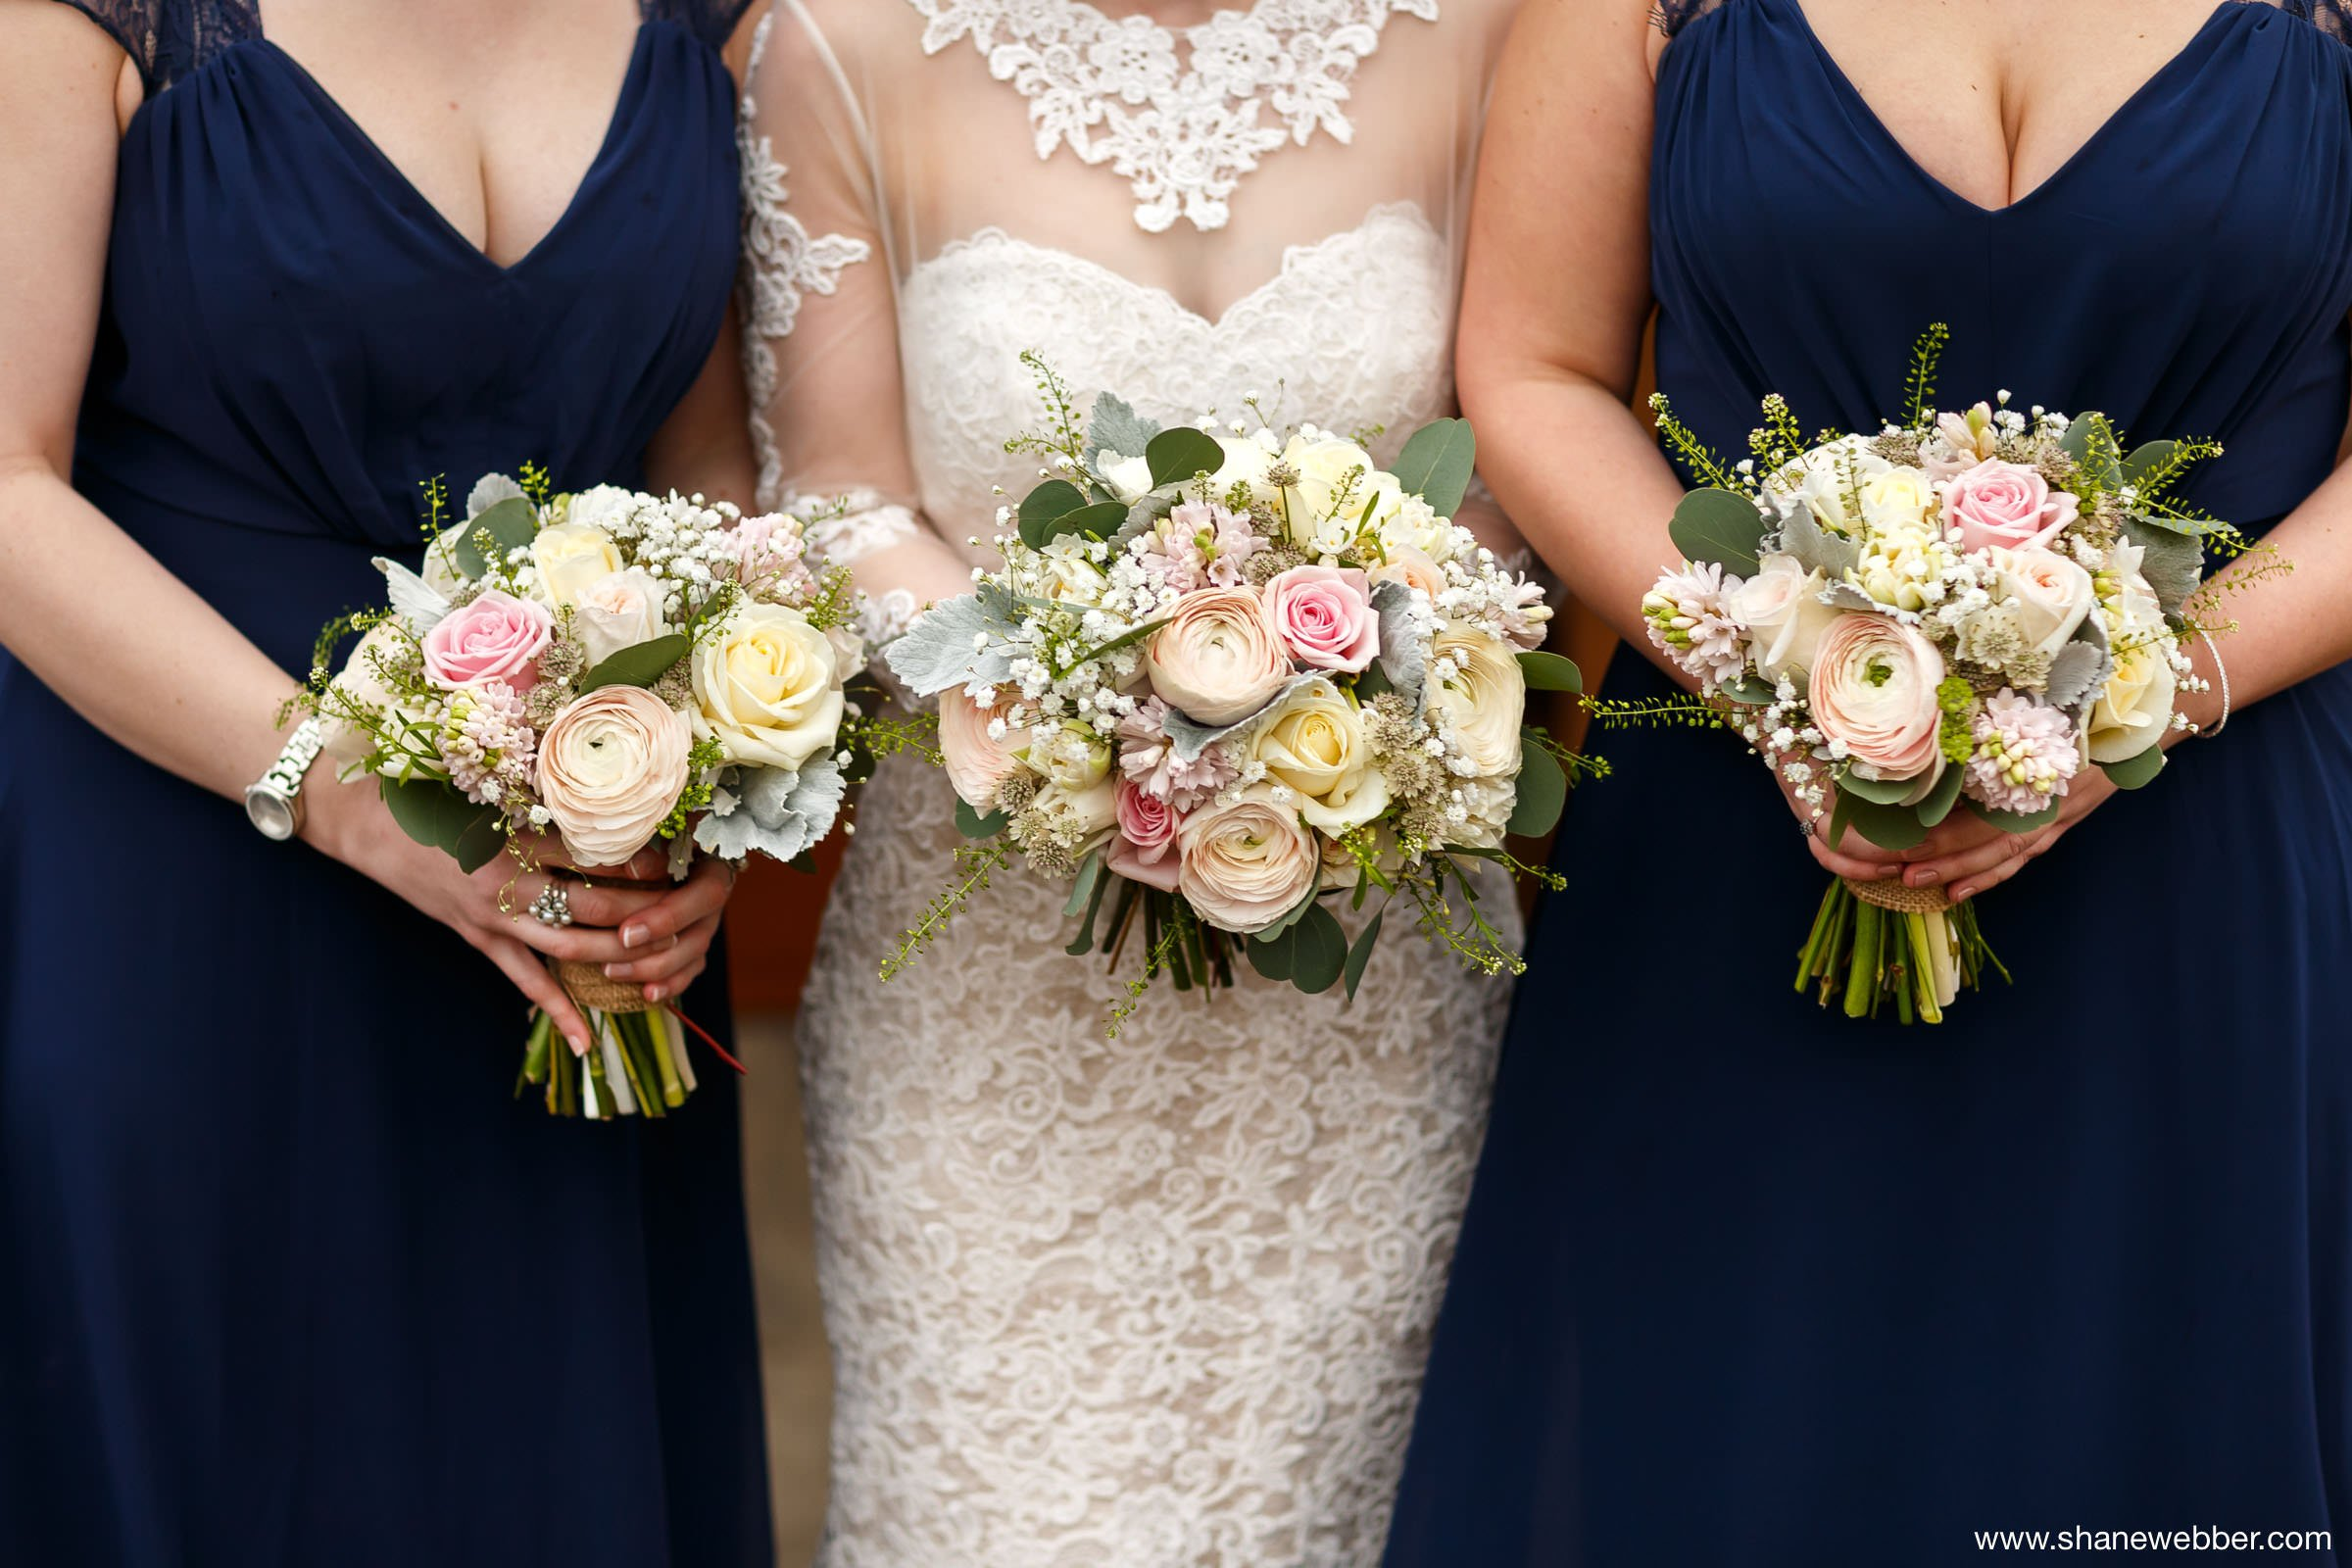 Green Earth Flowers bride and bridesmaid bouquets